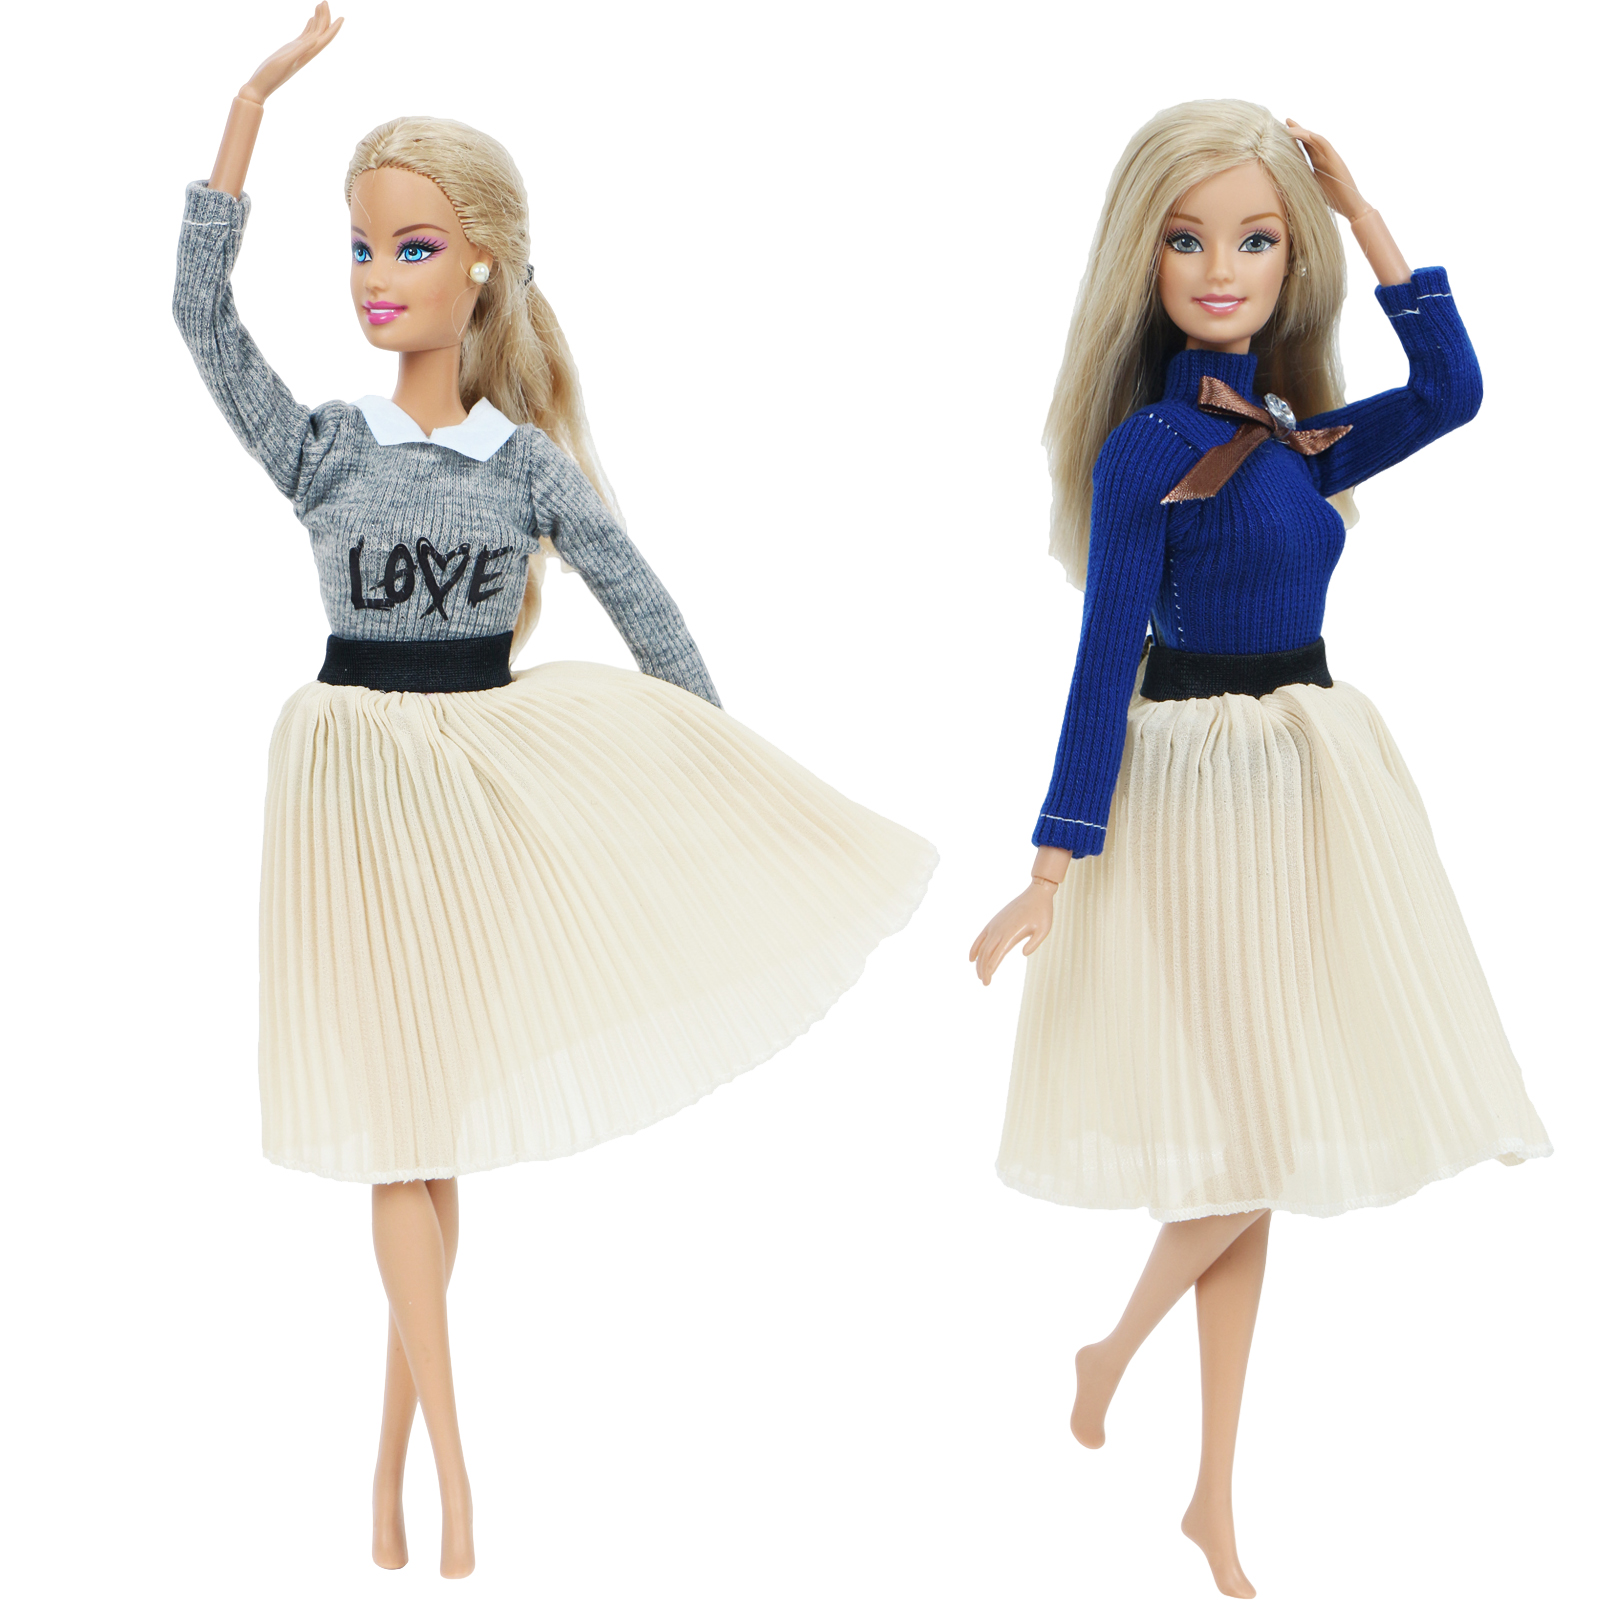 2 Pcs/Pack Handmade Doll Dress For Barbie Doll Fashion Long Sleeves Knitwear Blouse Shirt Pleated Skirt Clothes Accessories Toy